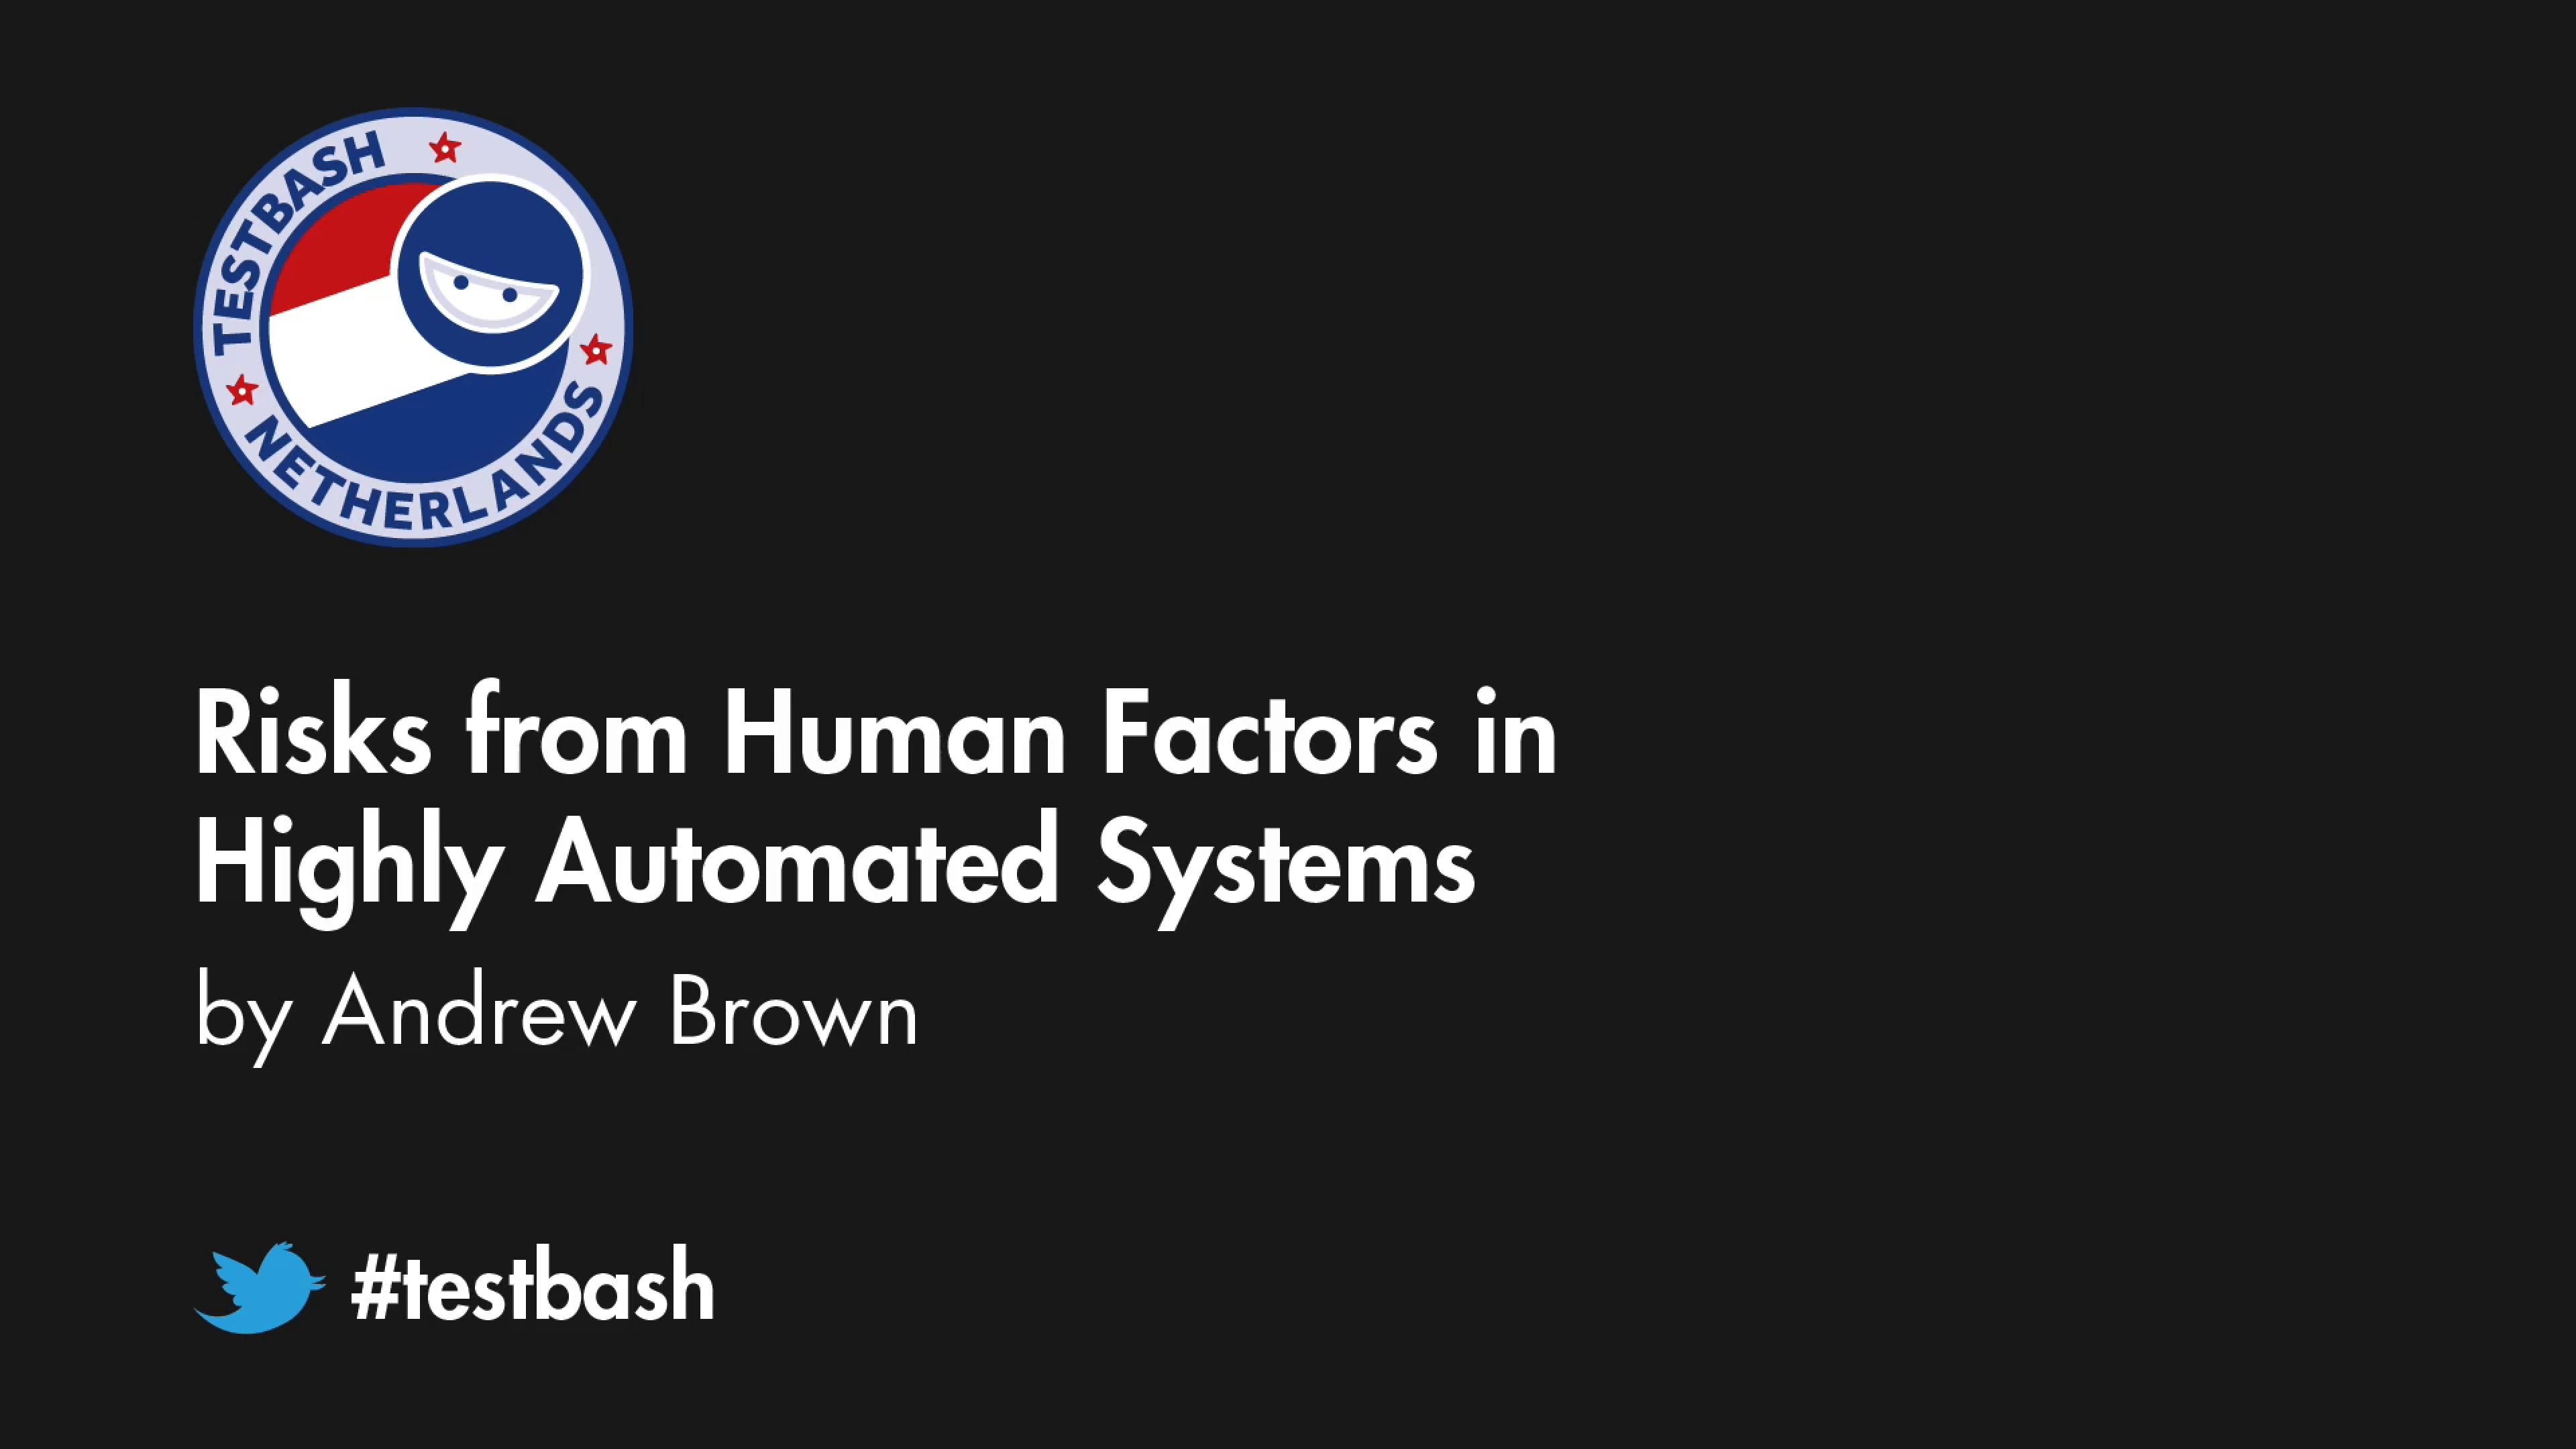 Risks from Human Factors in Highly Automated Systems - Andrew Brown